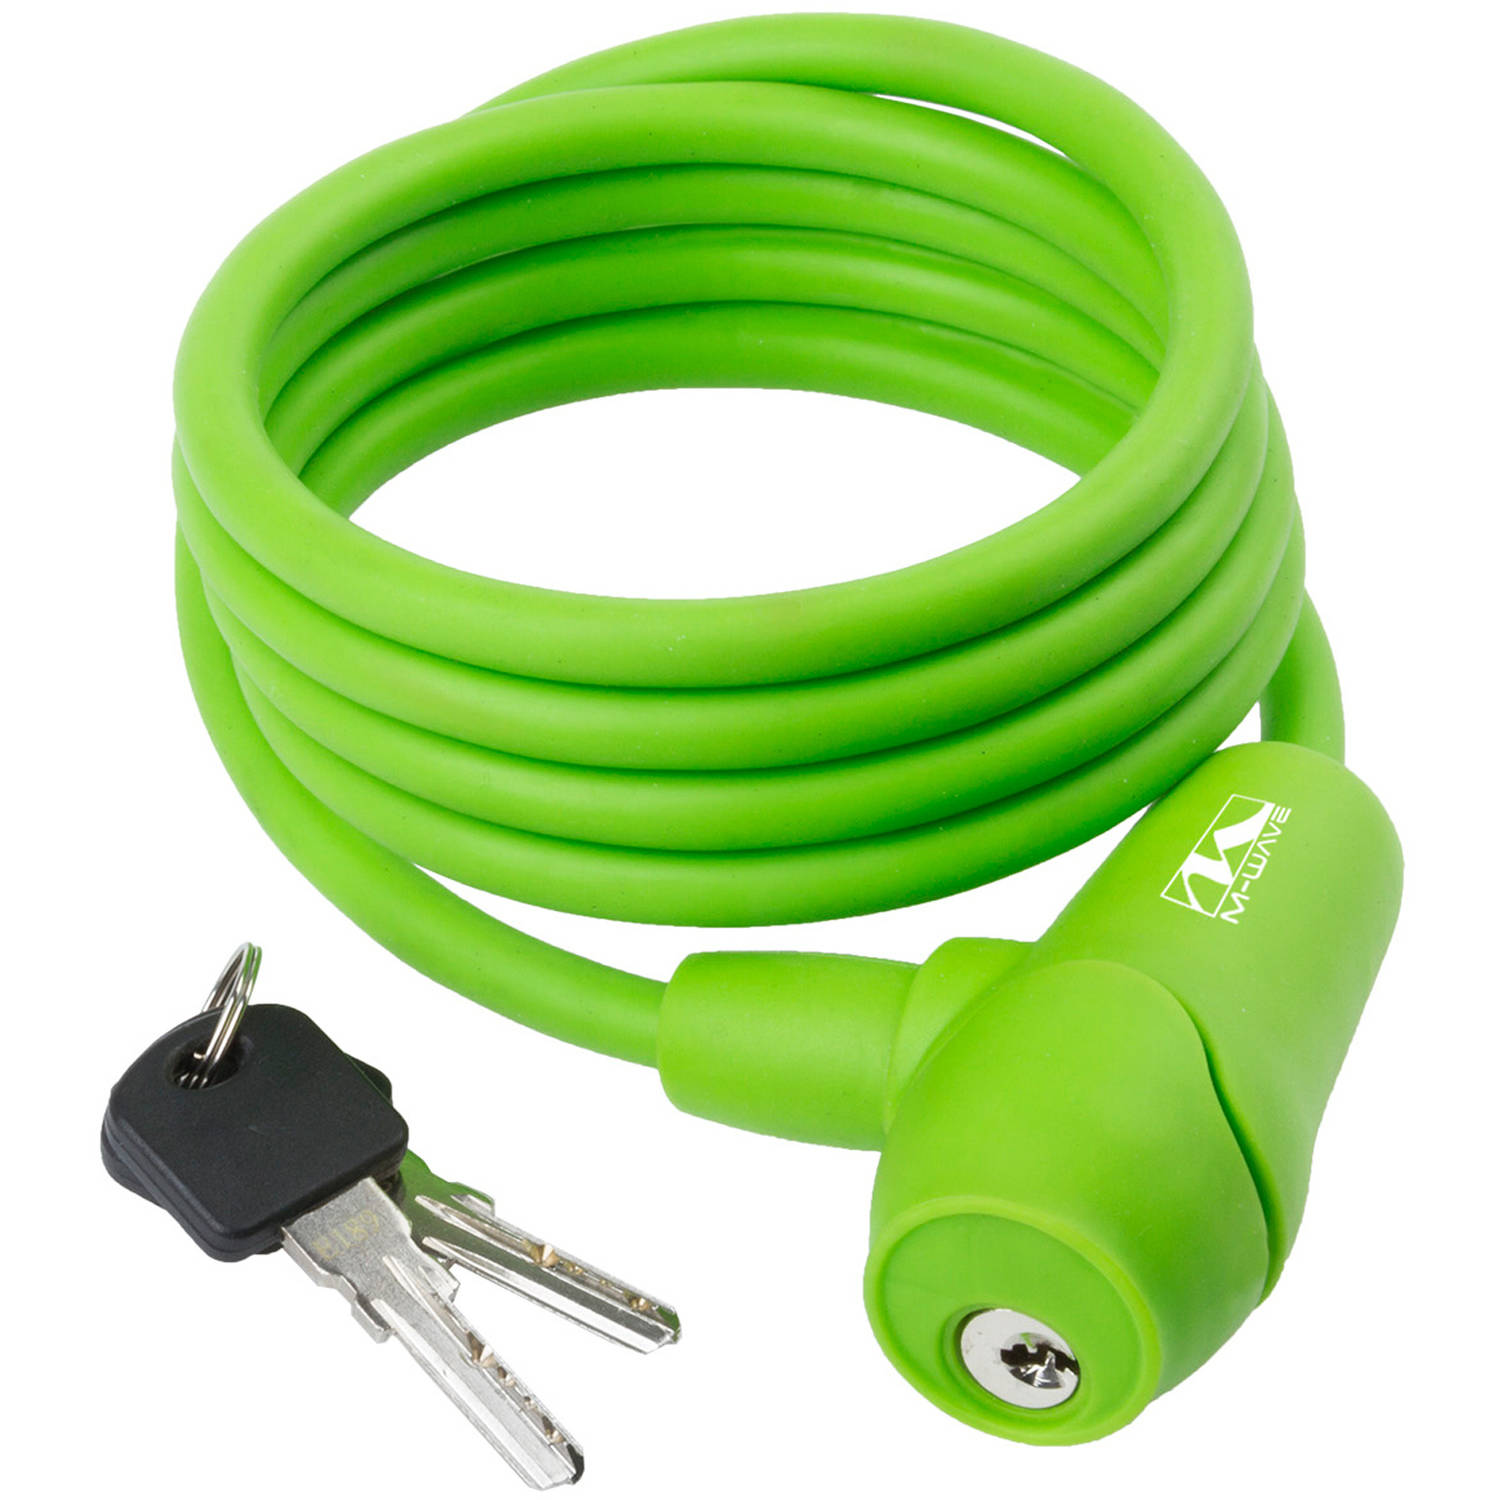 Ventura S8.15 Silicone 5' x 8mm Bike Lock